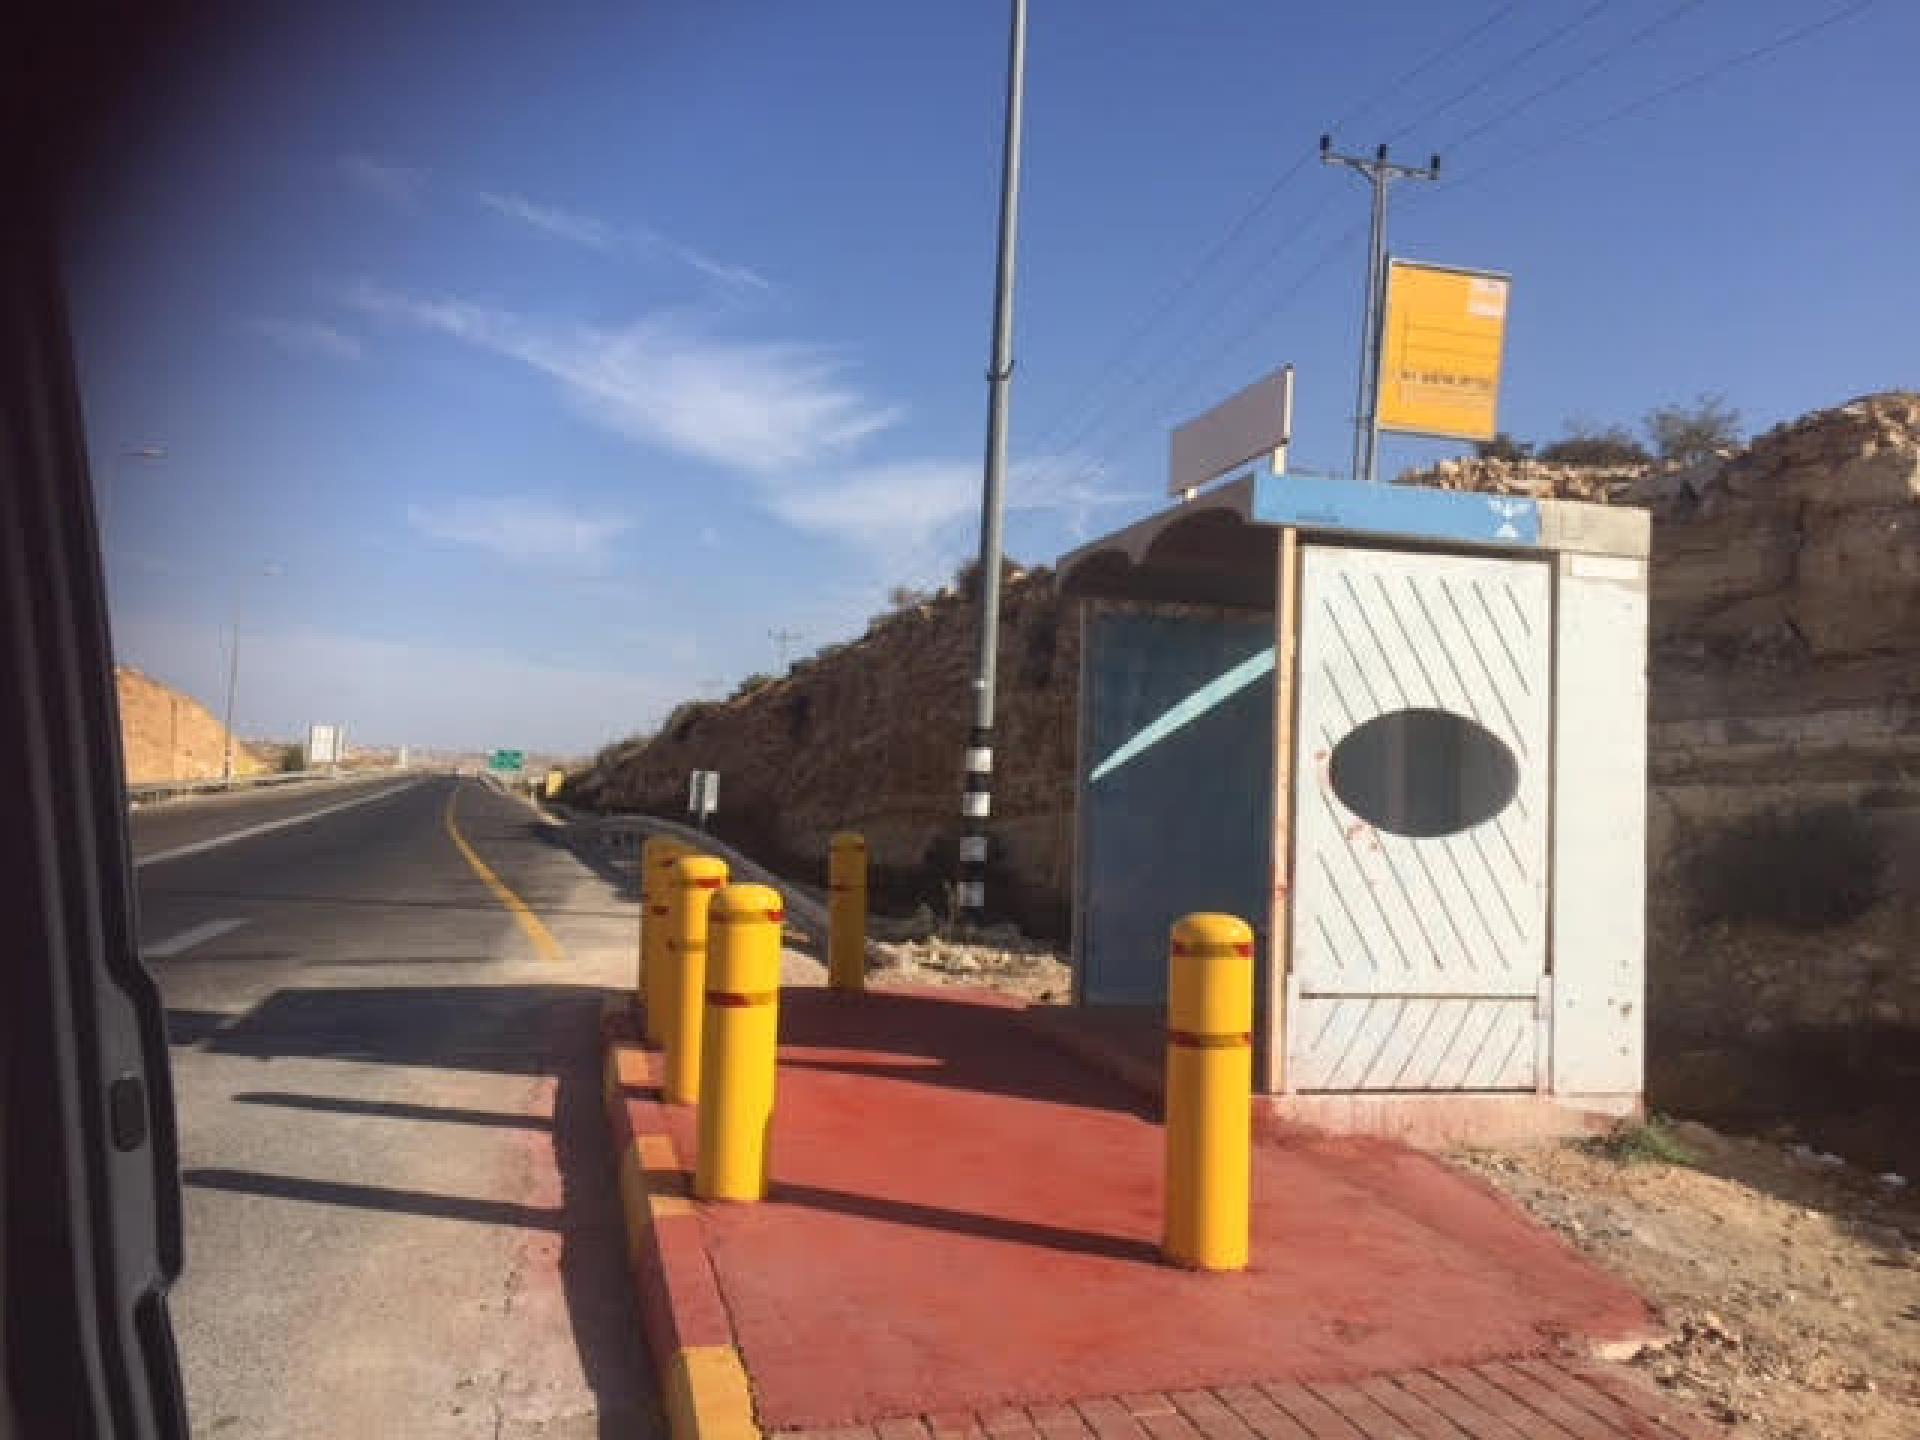 The bus stations under the settlements the protection has been changed